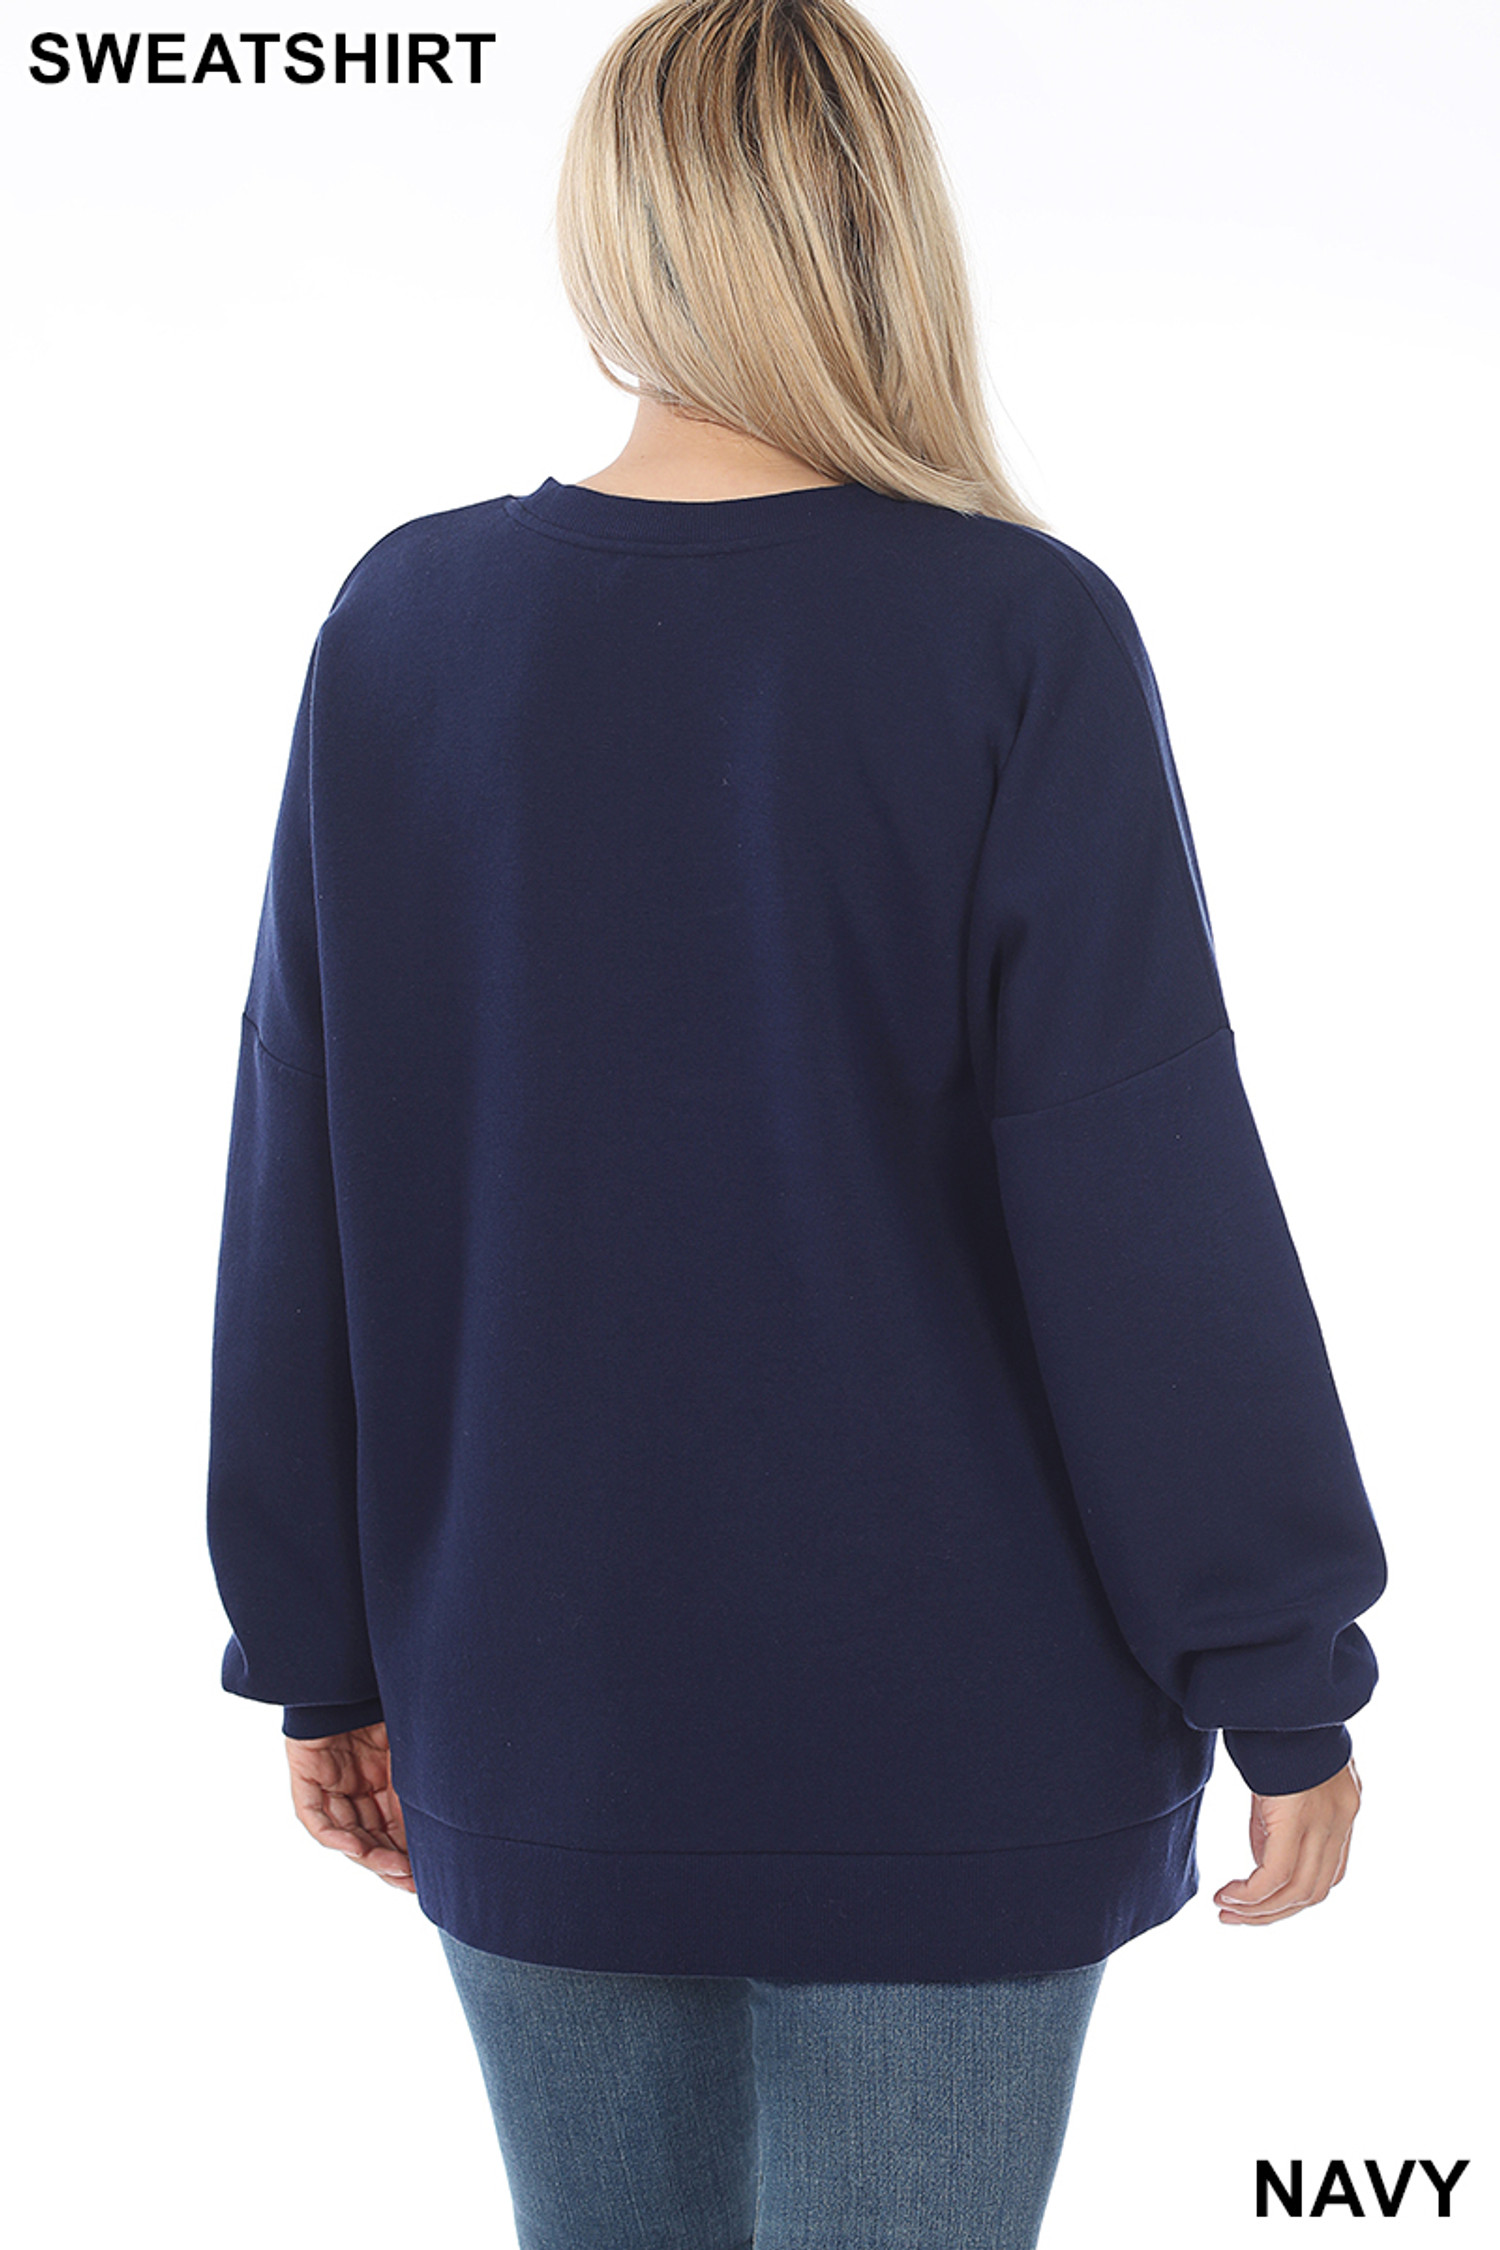 Back view of Navy Round Neck Hi-Low Hem Plus Size Sweatshirt